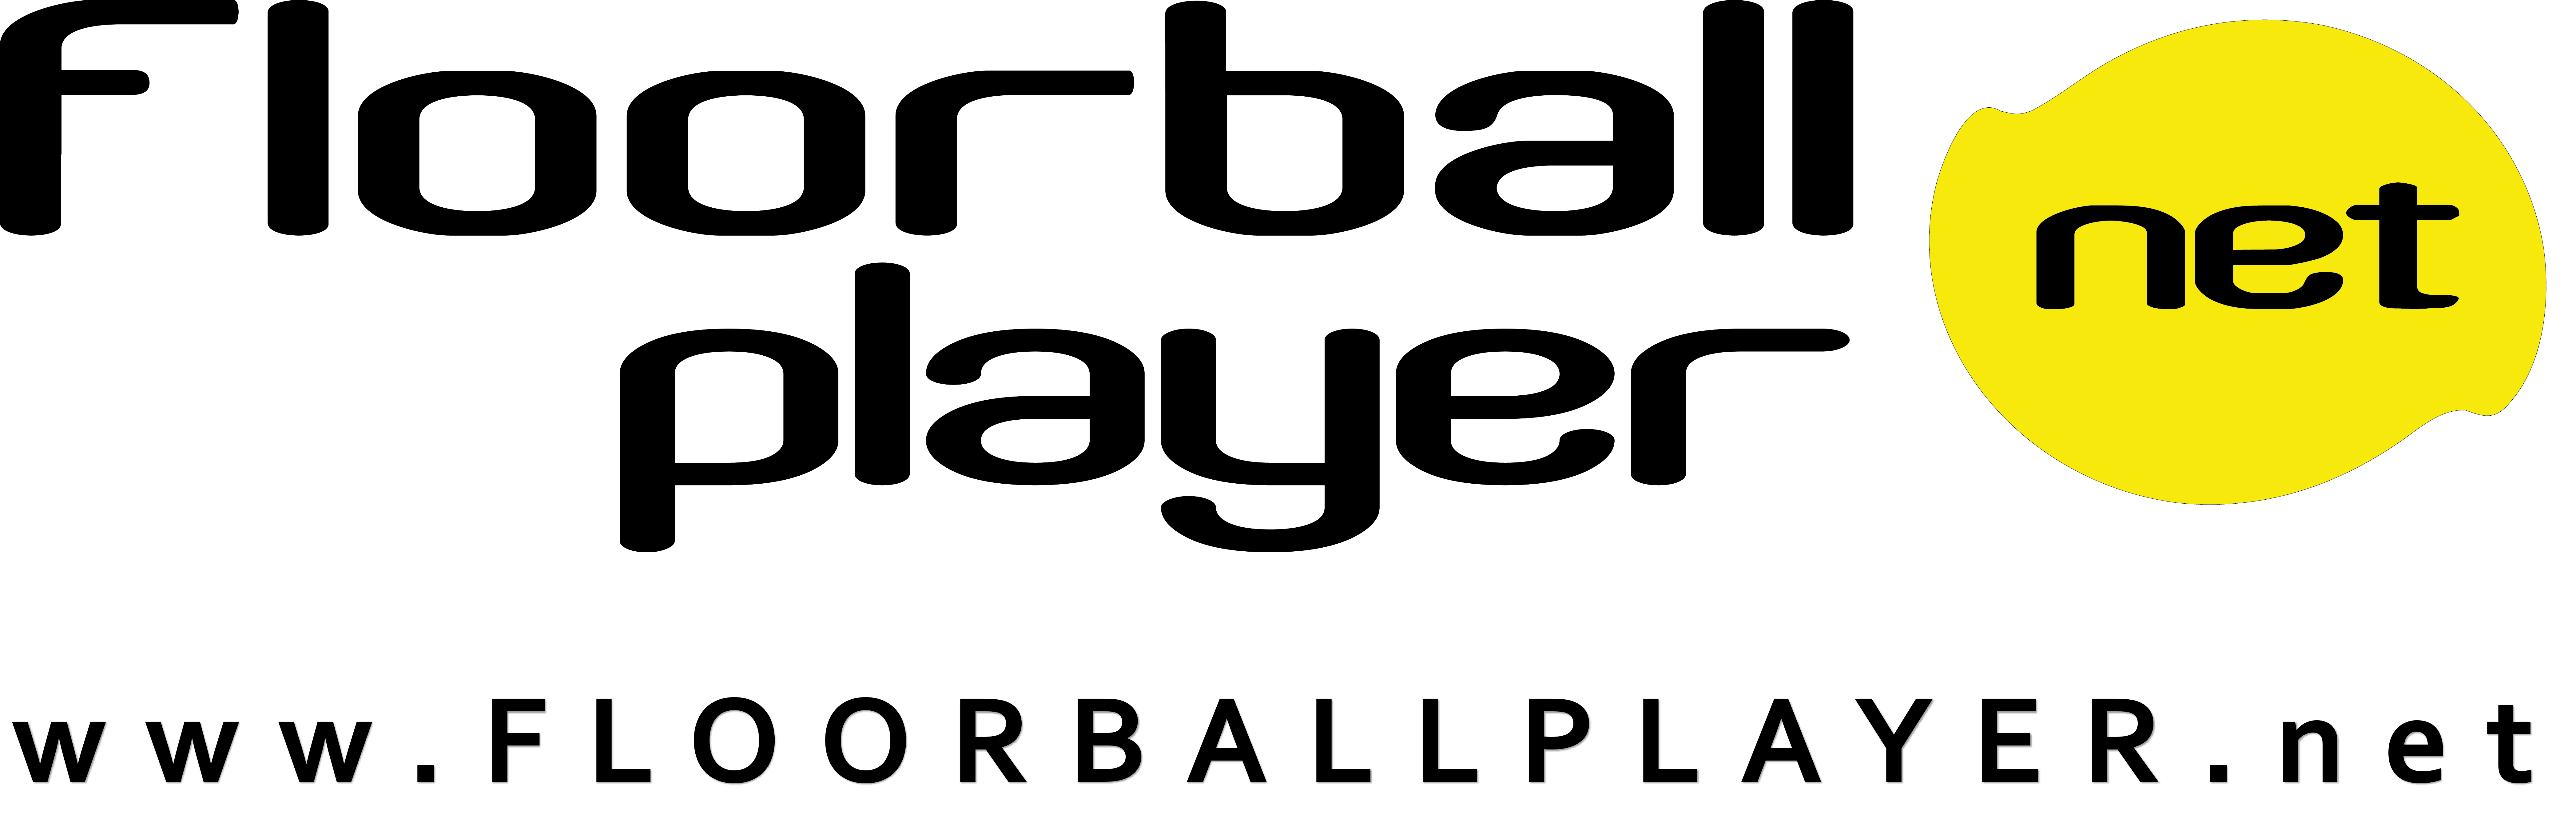 Floorball player